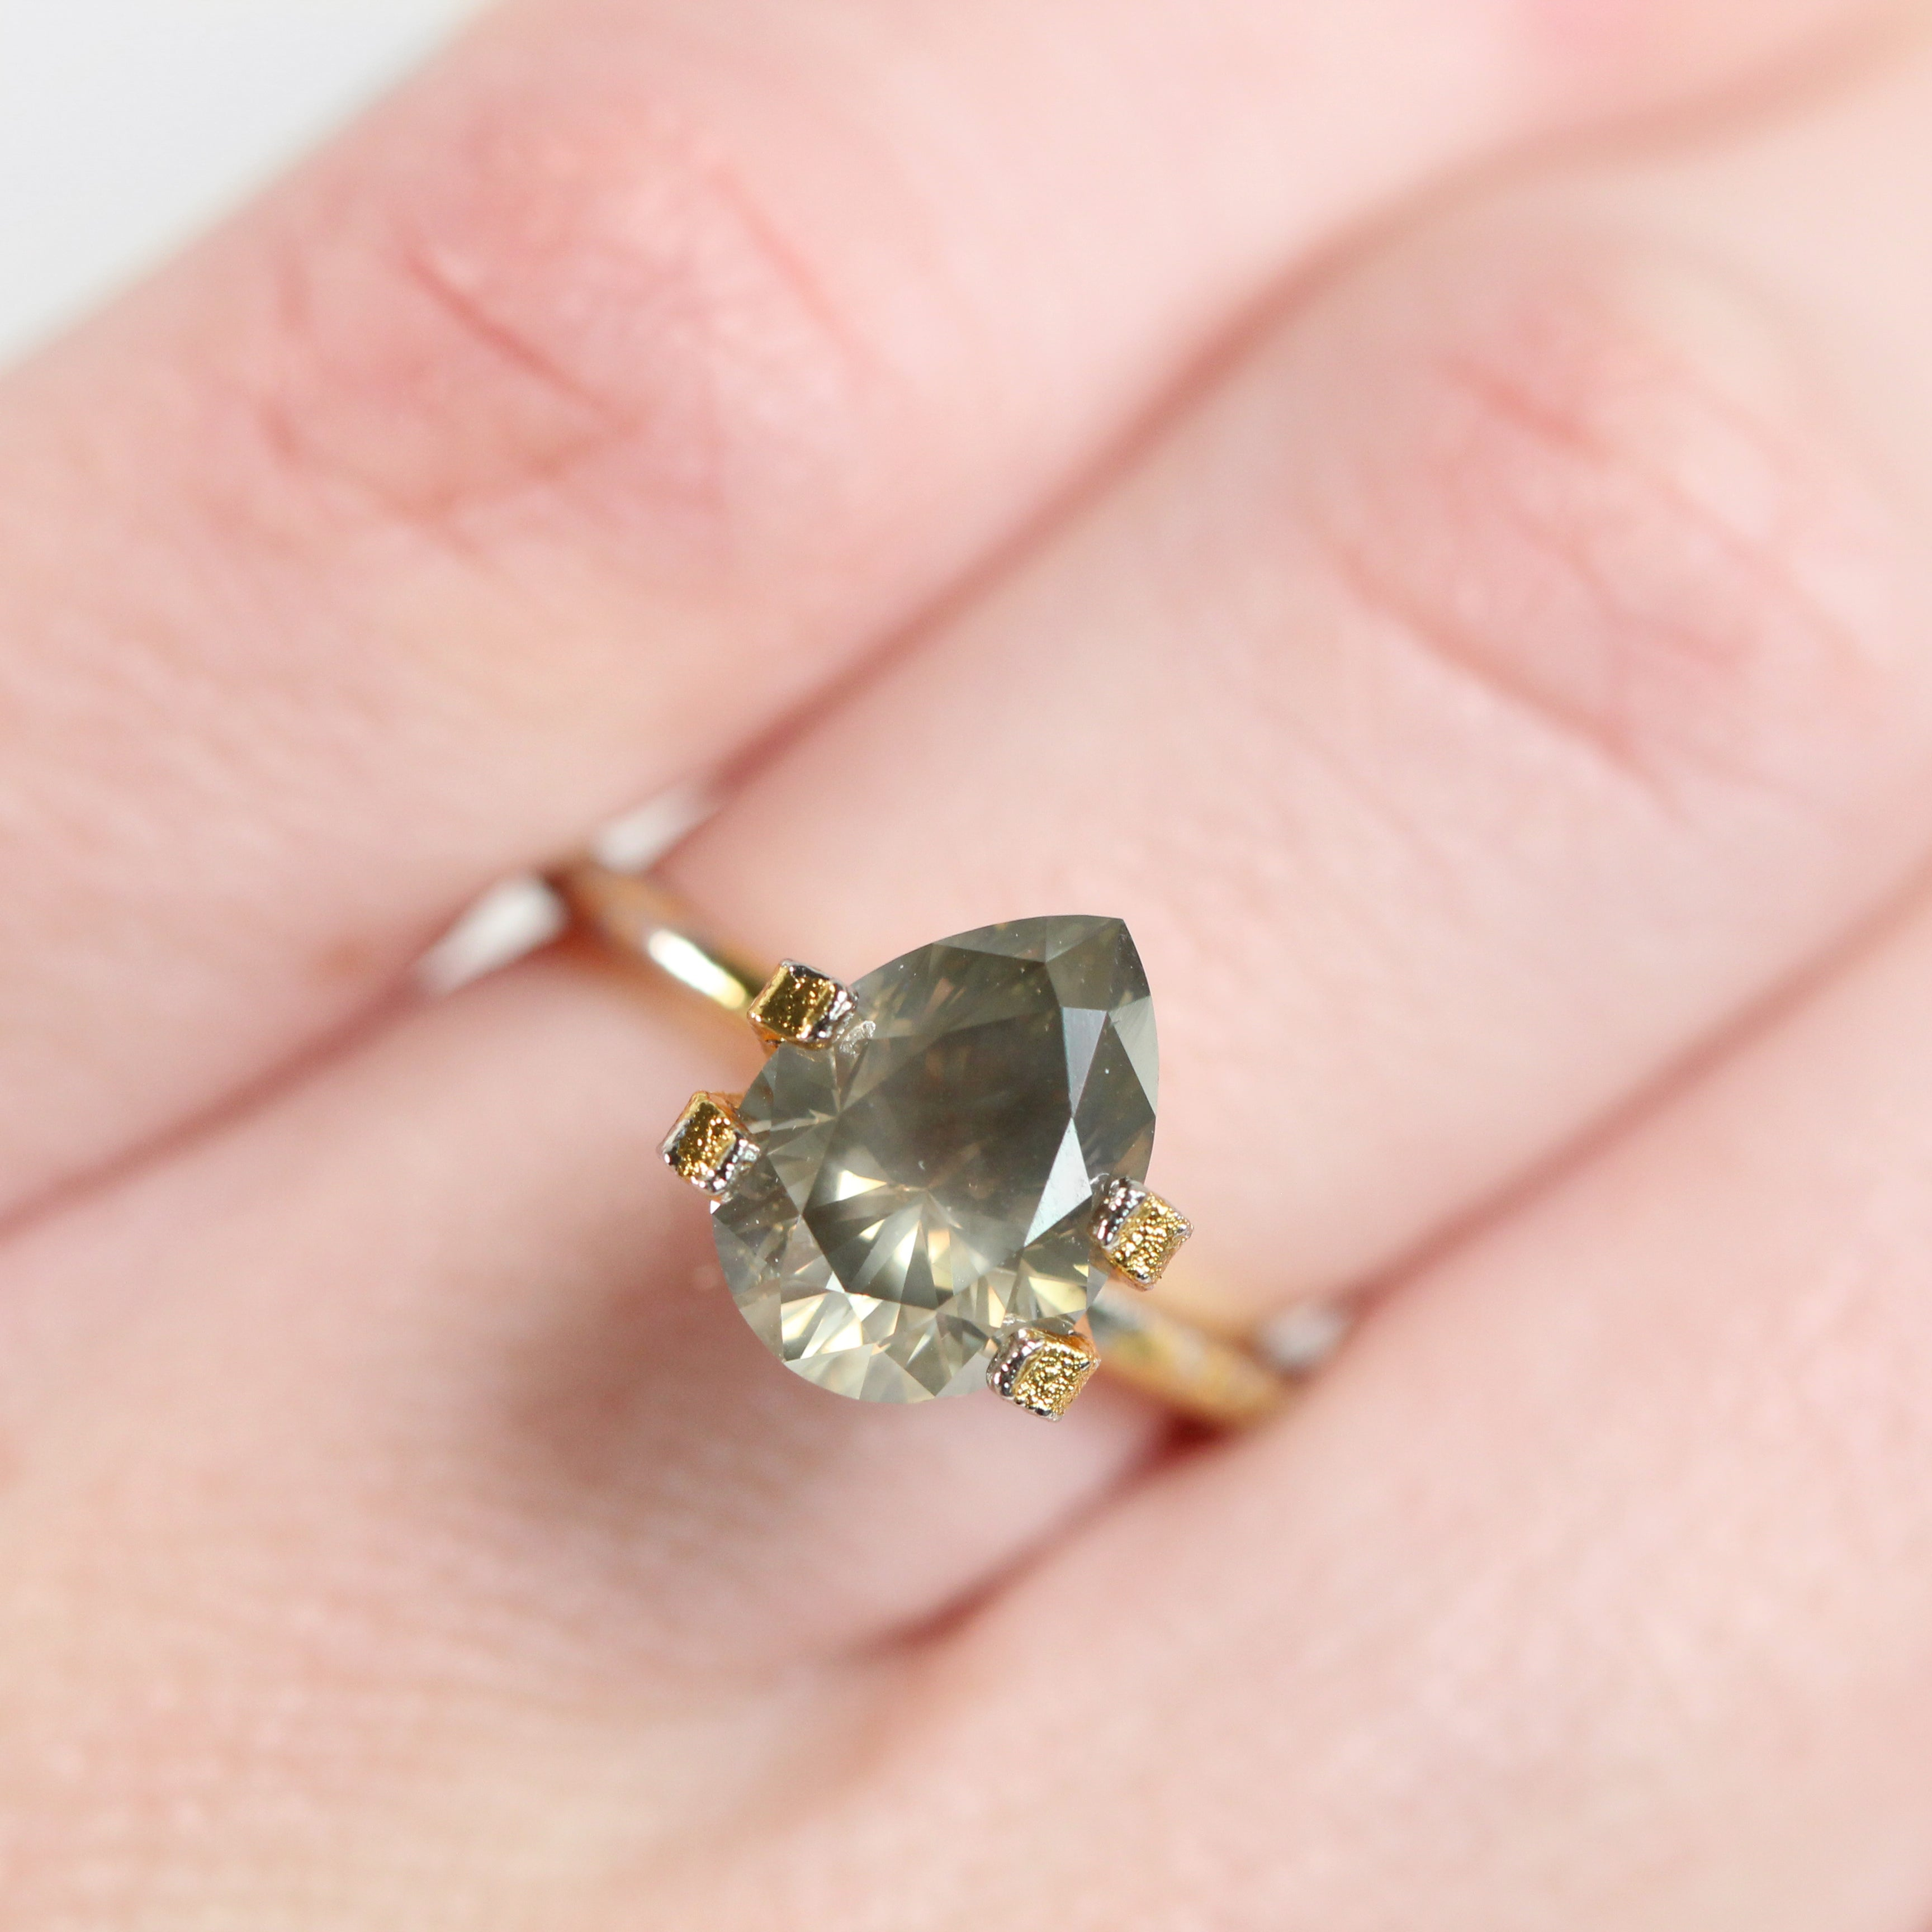 2.54 Carat IGL Certified Pear Celestial Diamond for Custom Work - Inventory Code PBCH254 - Midwinter Co. Alternative Bridal Rings and Modern Fine Jewelry